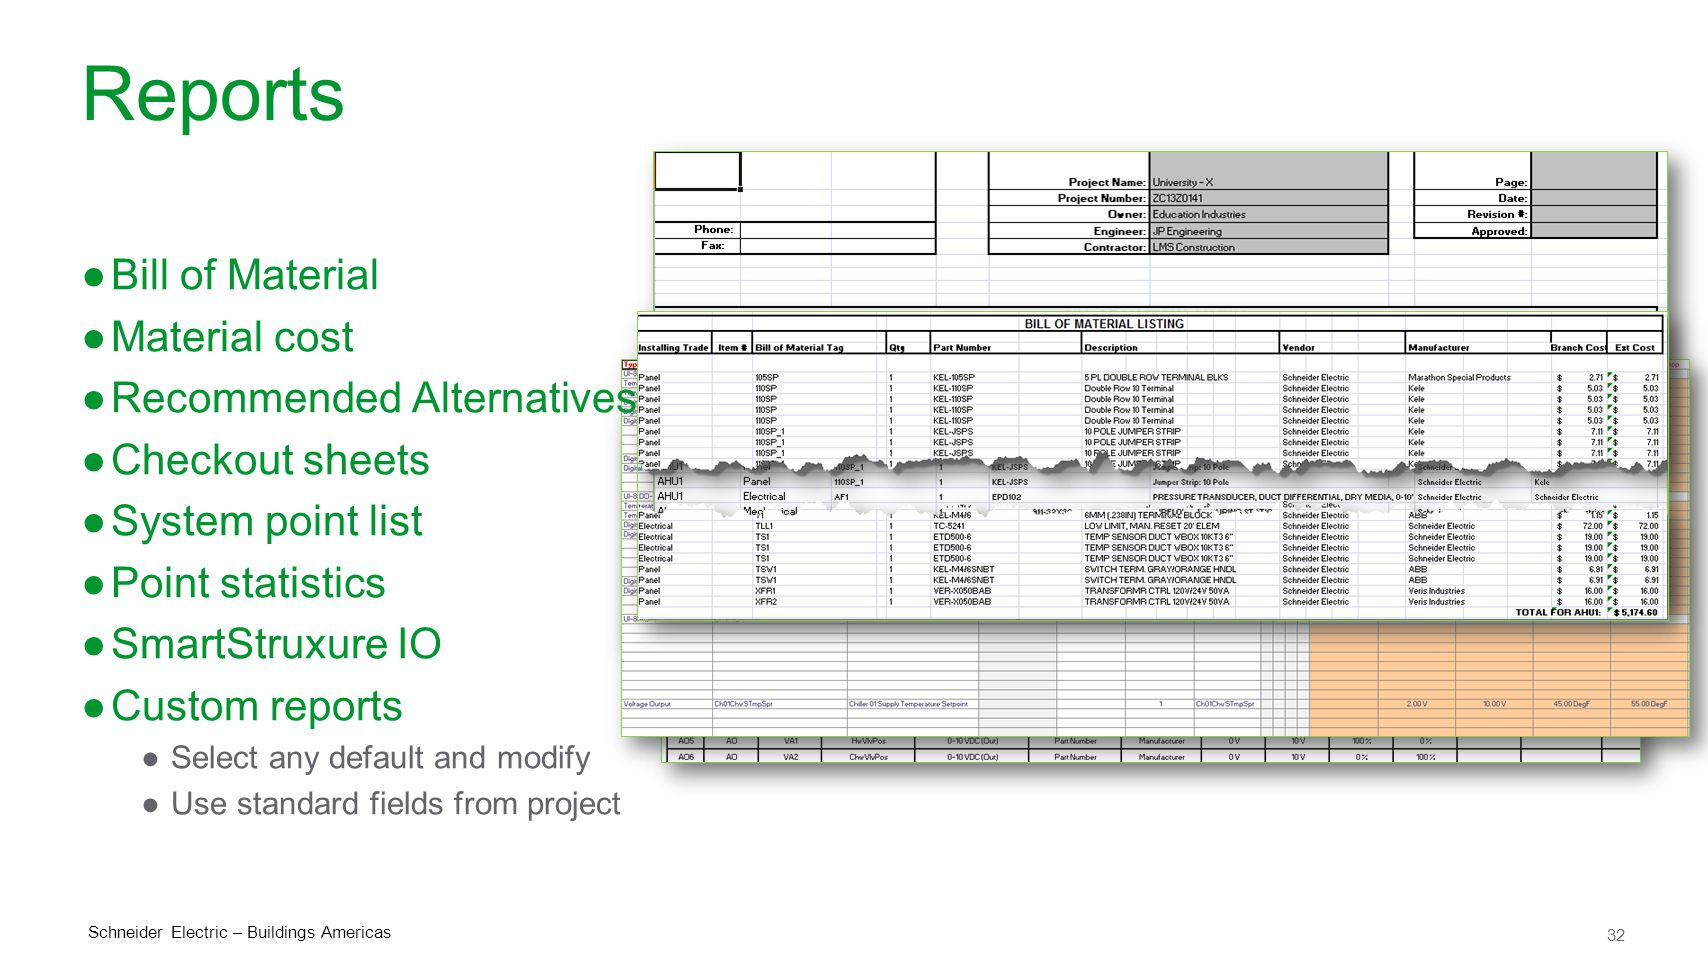 32 Schneider Electric – Buildings Americas Reports ●Bill of Material ●Material cost ●Recommended Alternatives ●Checkout sheets ●System point list ●Point statistics ●SmartStruxure IO ●Custom reports ●Select any default and modify ●Use standard fields from project